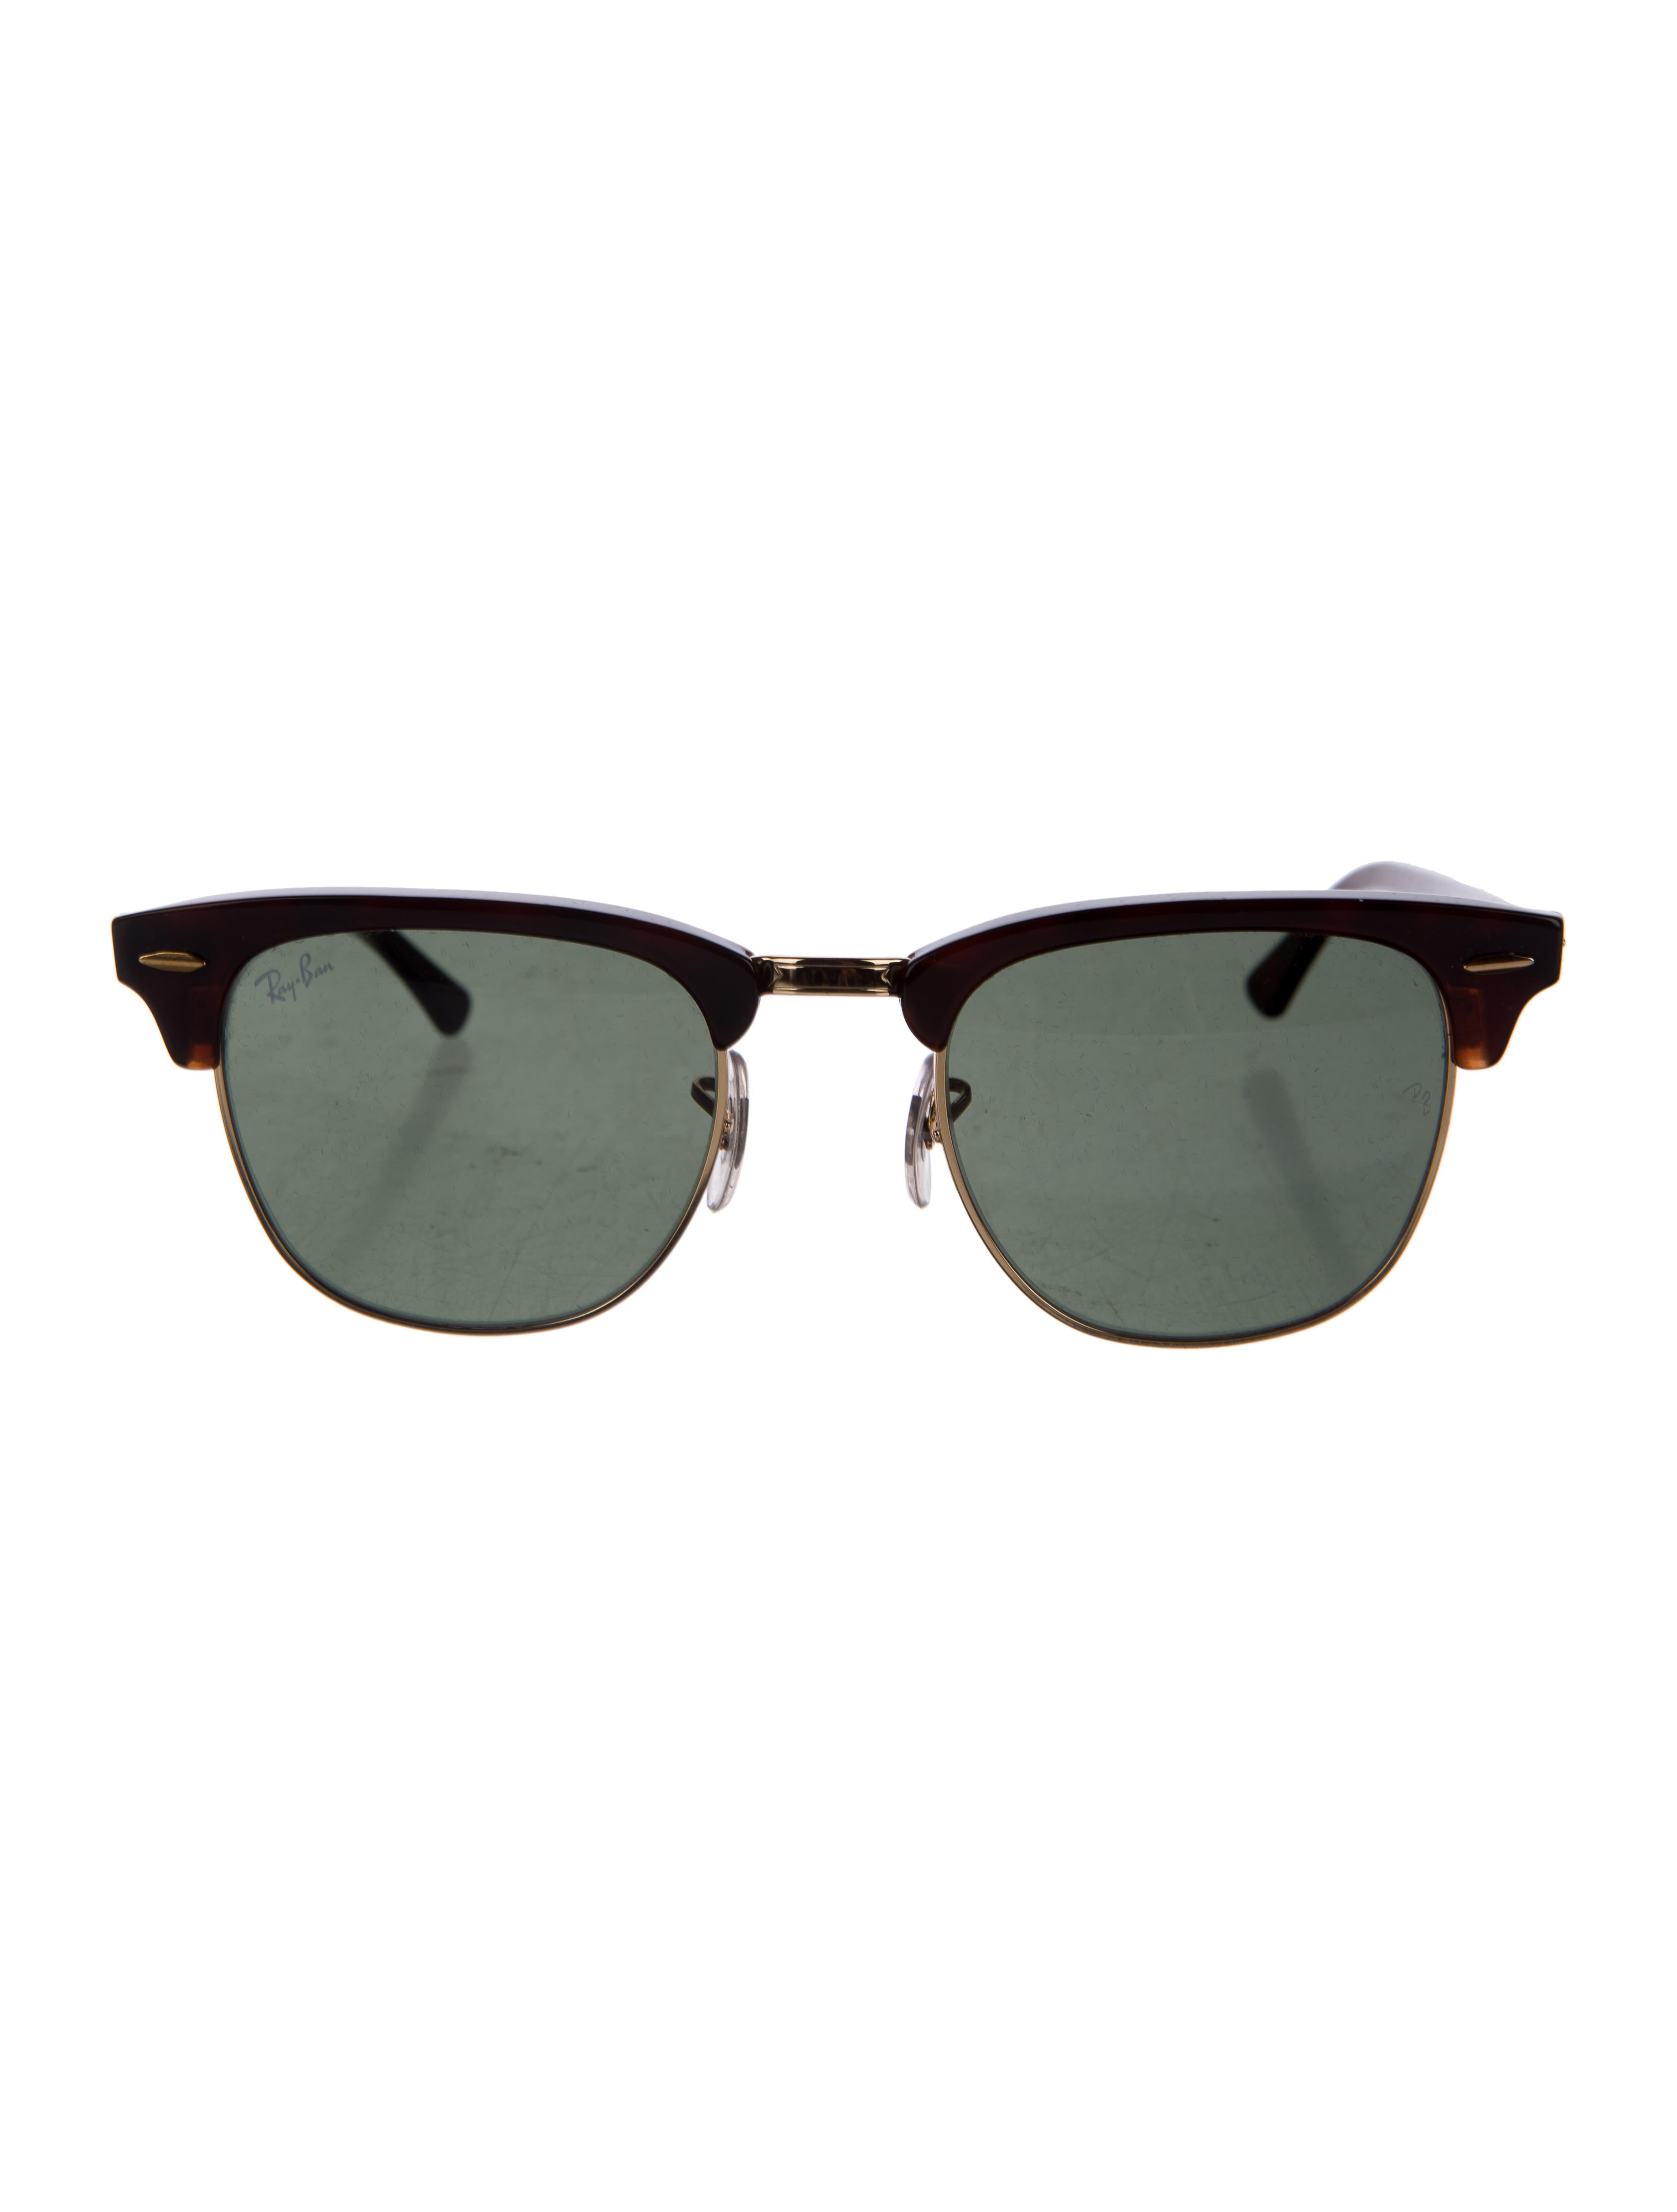 ed137c91361 Ray-Ban Tortoiseshell-Accented Clubmaster Sunglasses - Accessories -  WRX26297